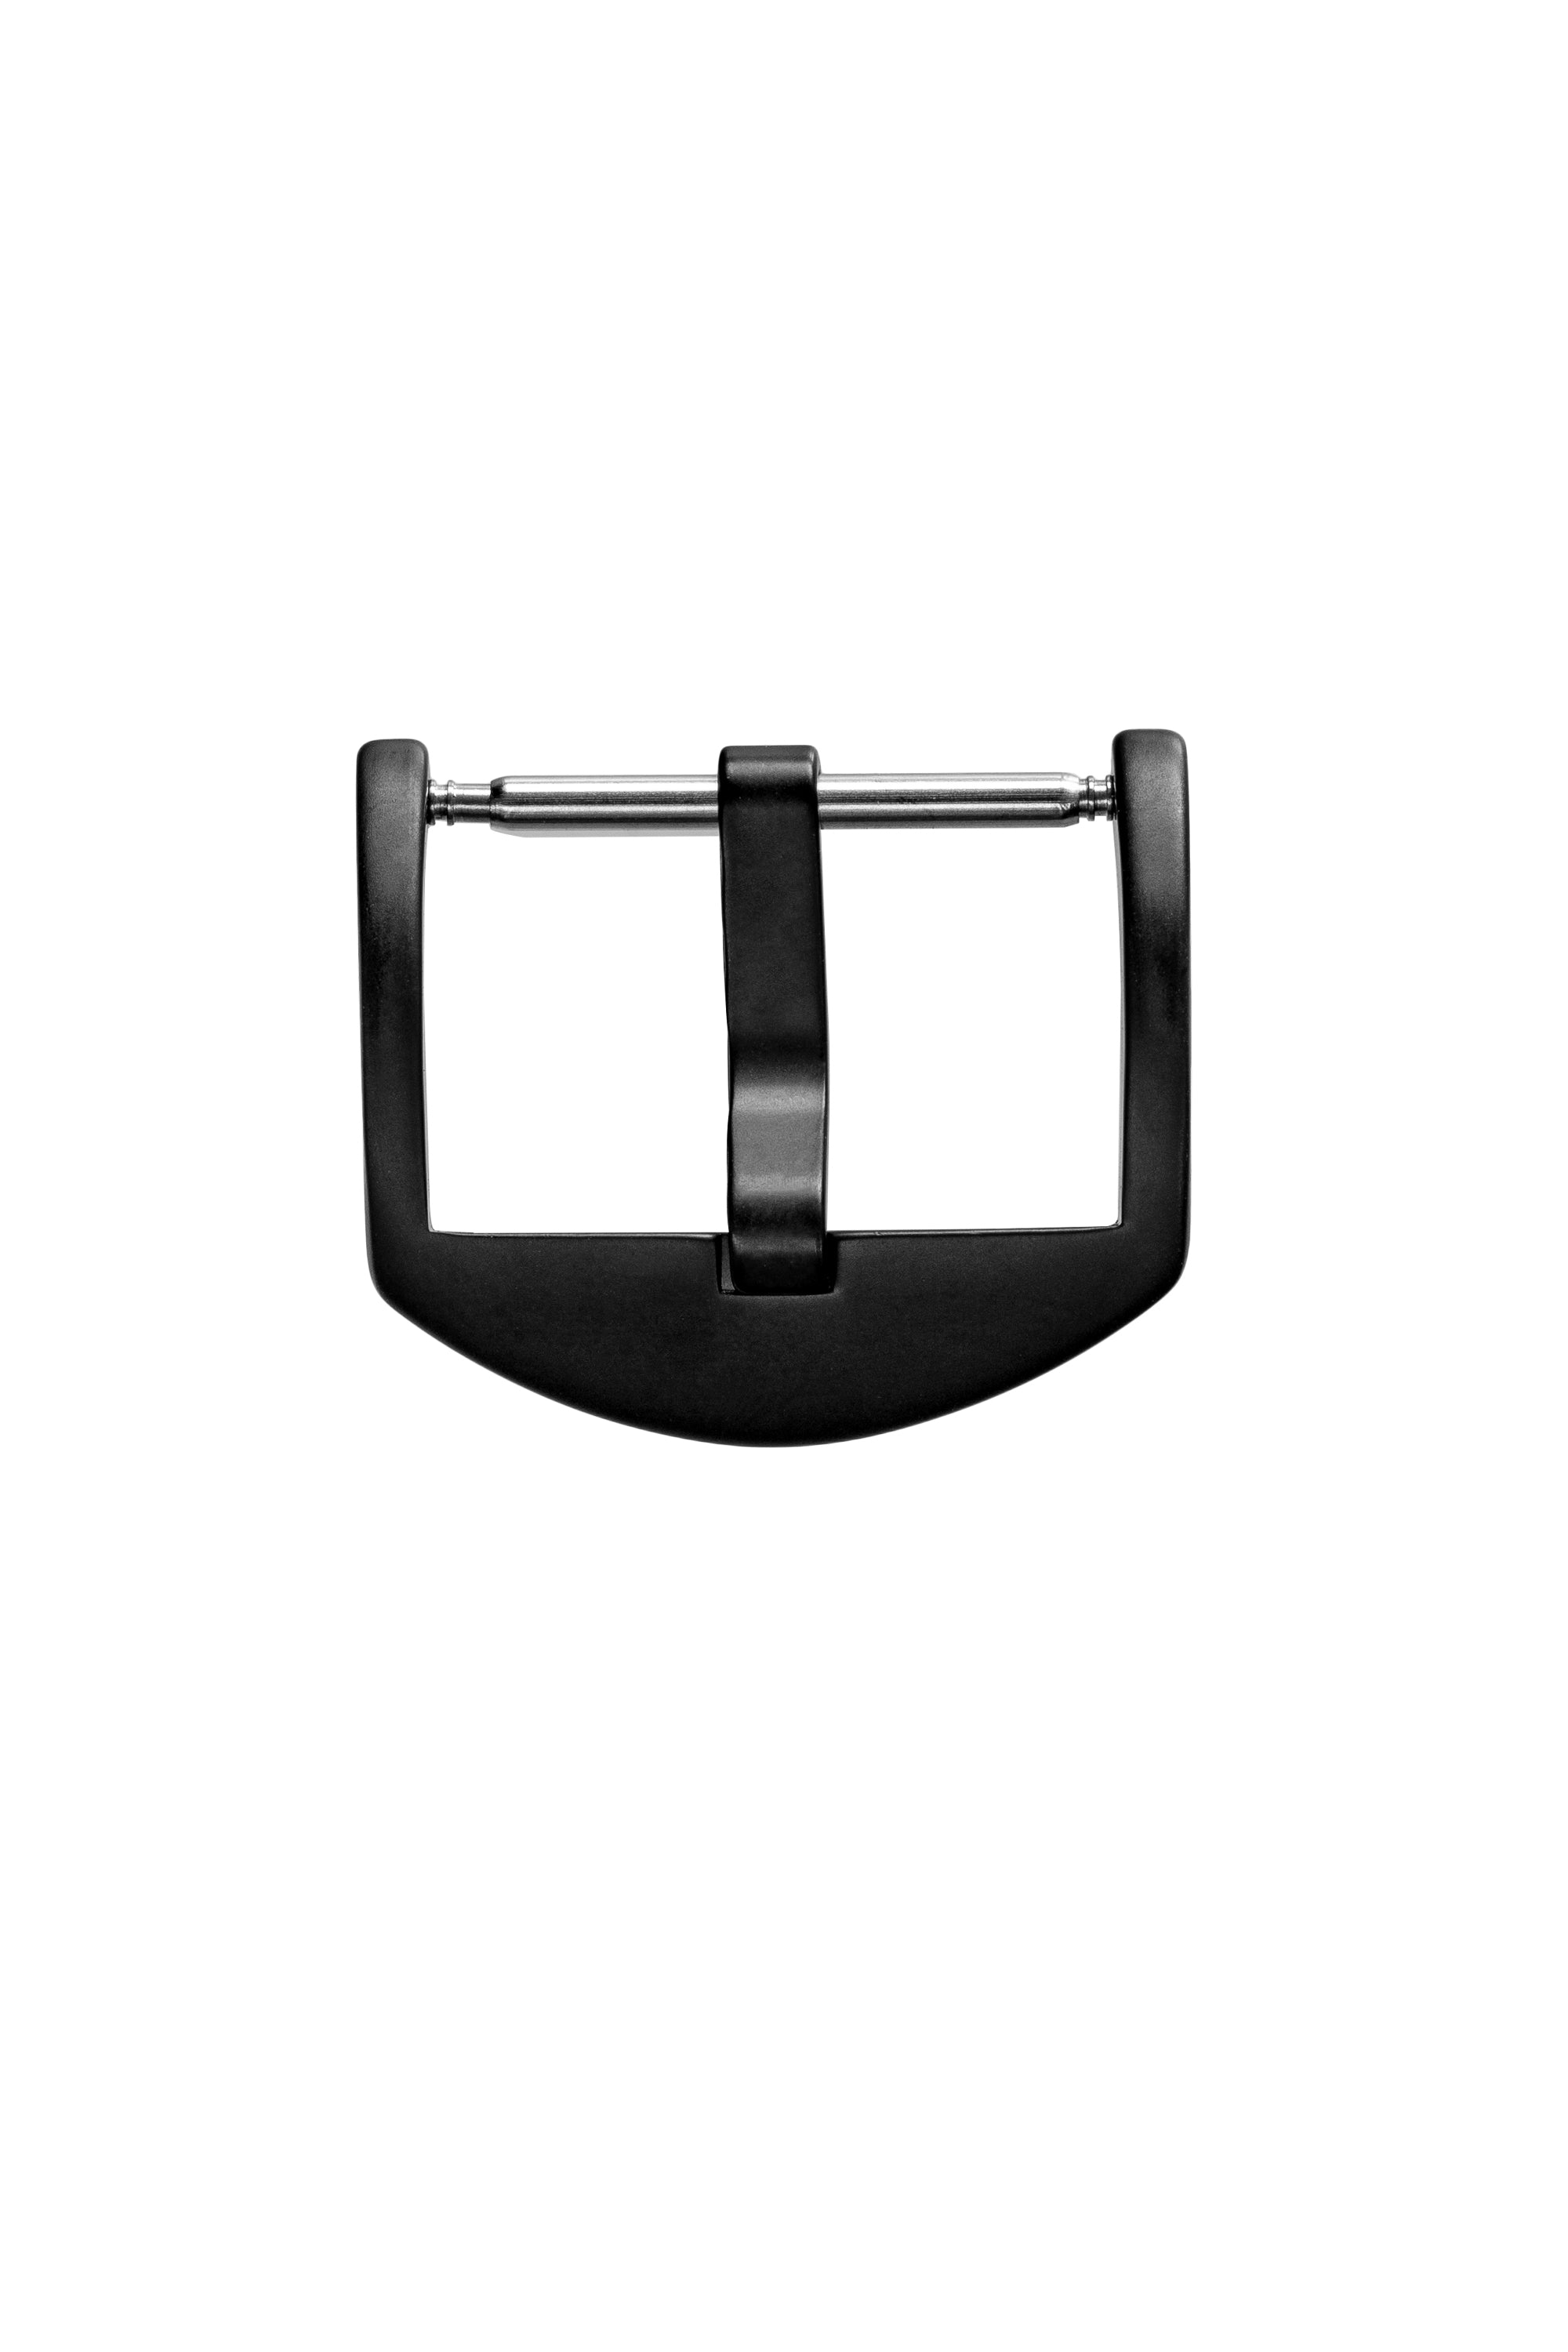 Rios1931 ITALY Stainless Steel Buckle with MATT BLACK Finish